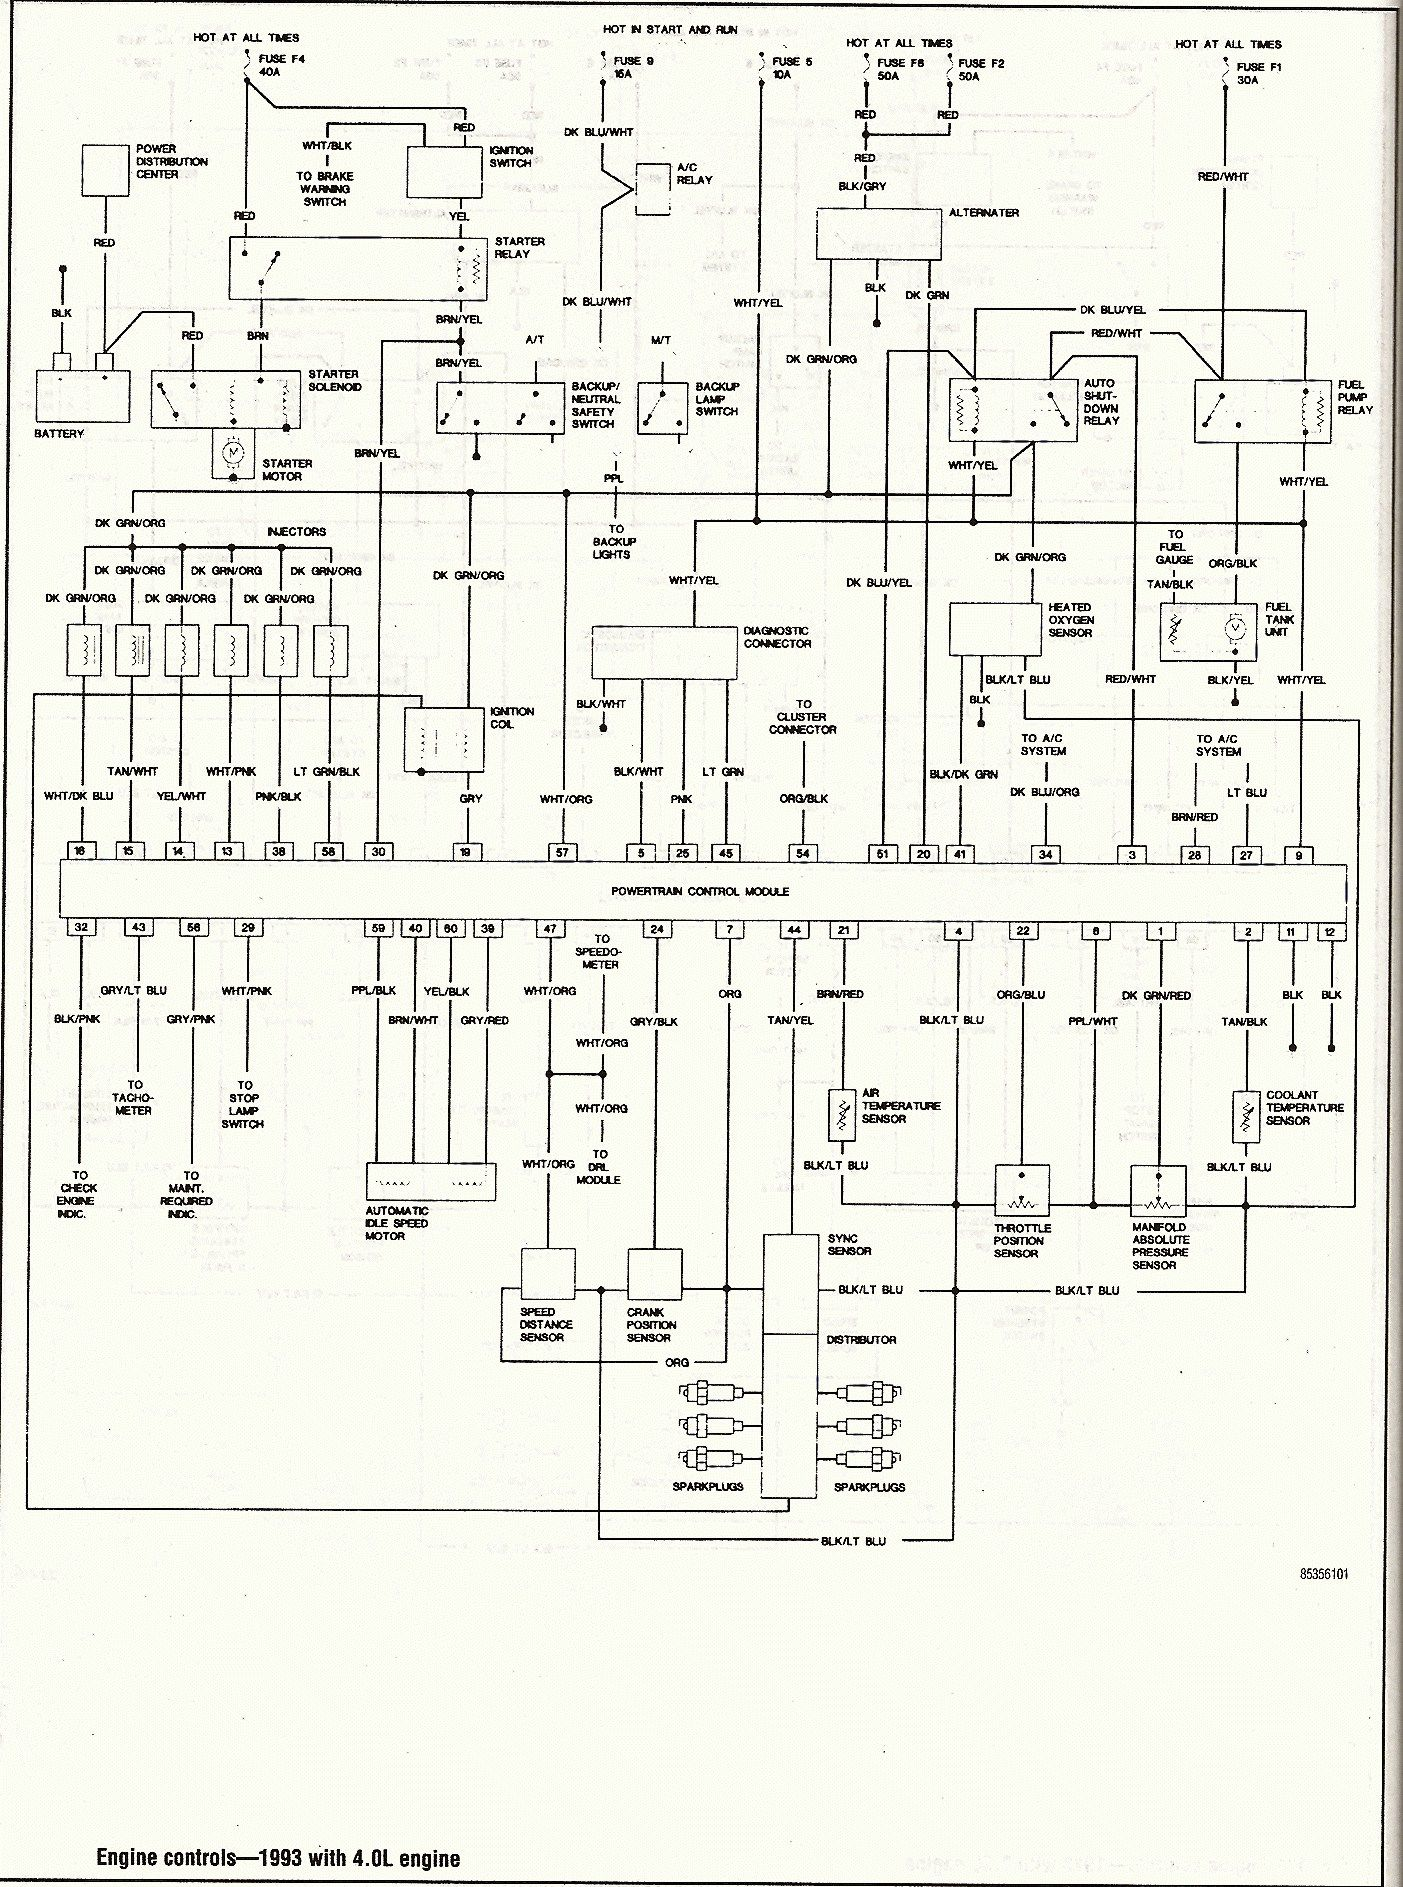 2010 Jeep Wrangler Wiring Diagram Remont